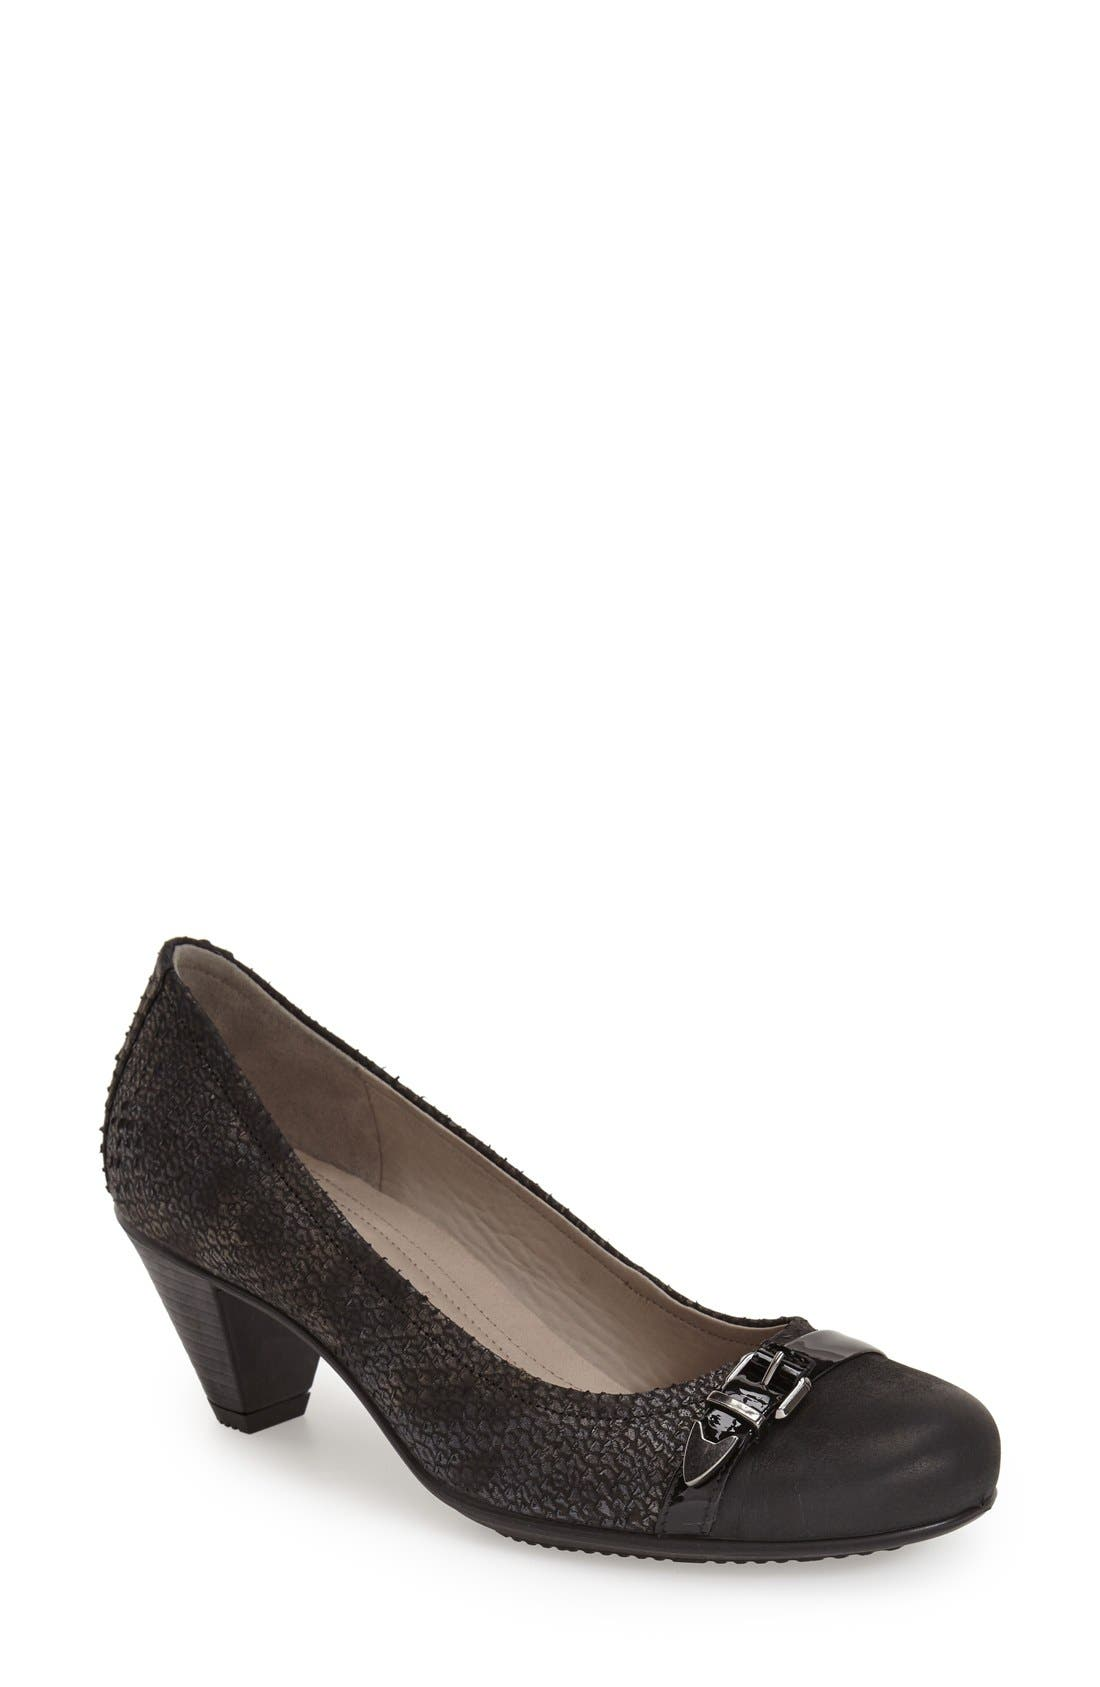 'Touch 50' Buckle Pump,                         Main,                         color, Black Leather